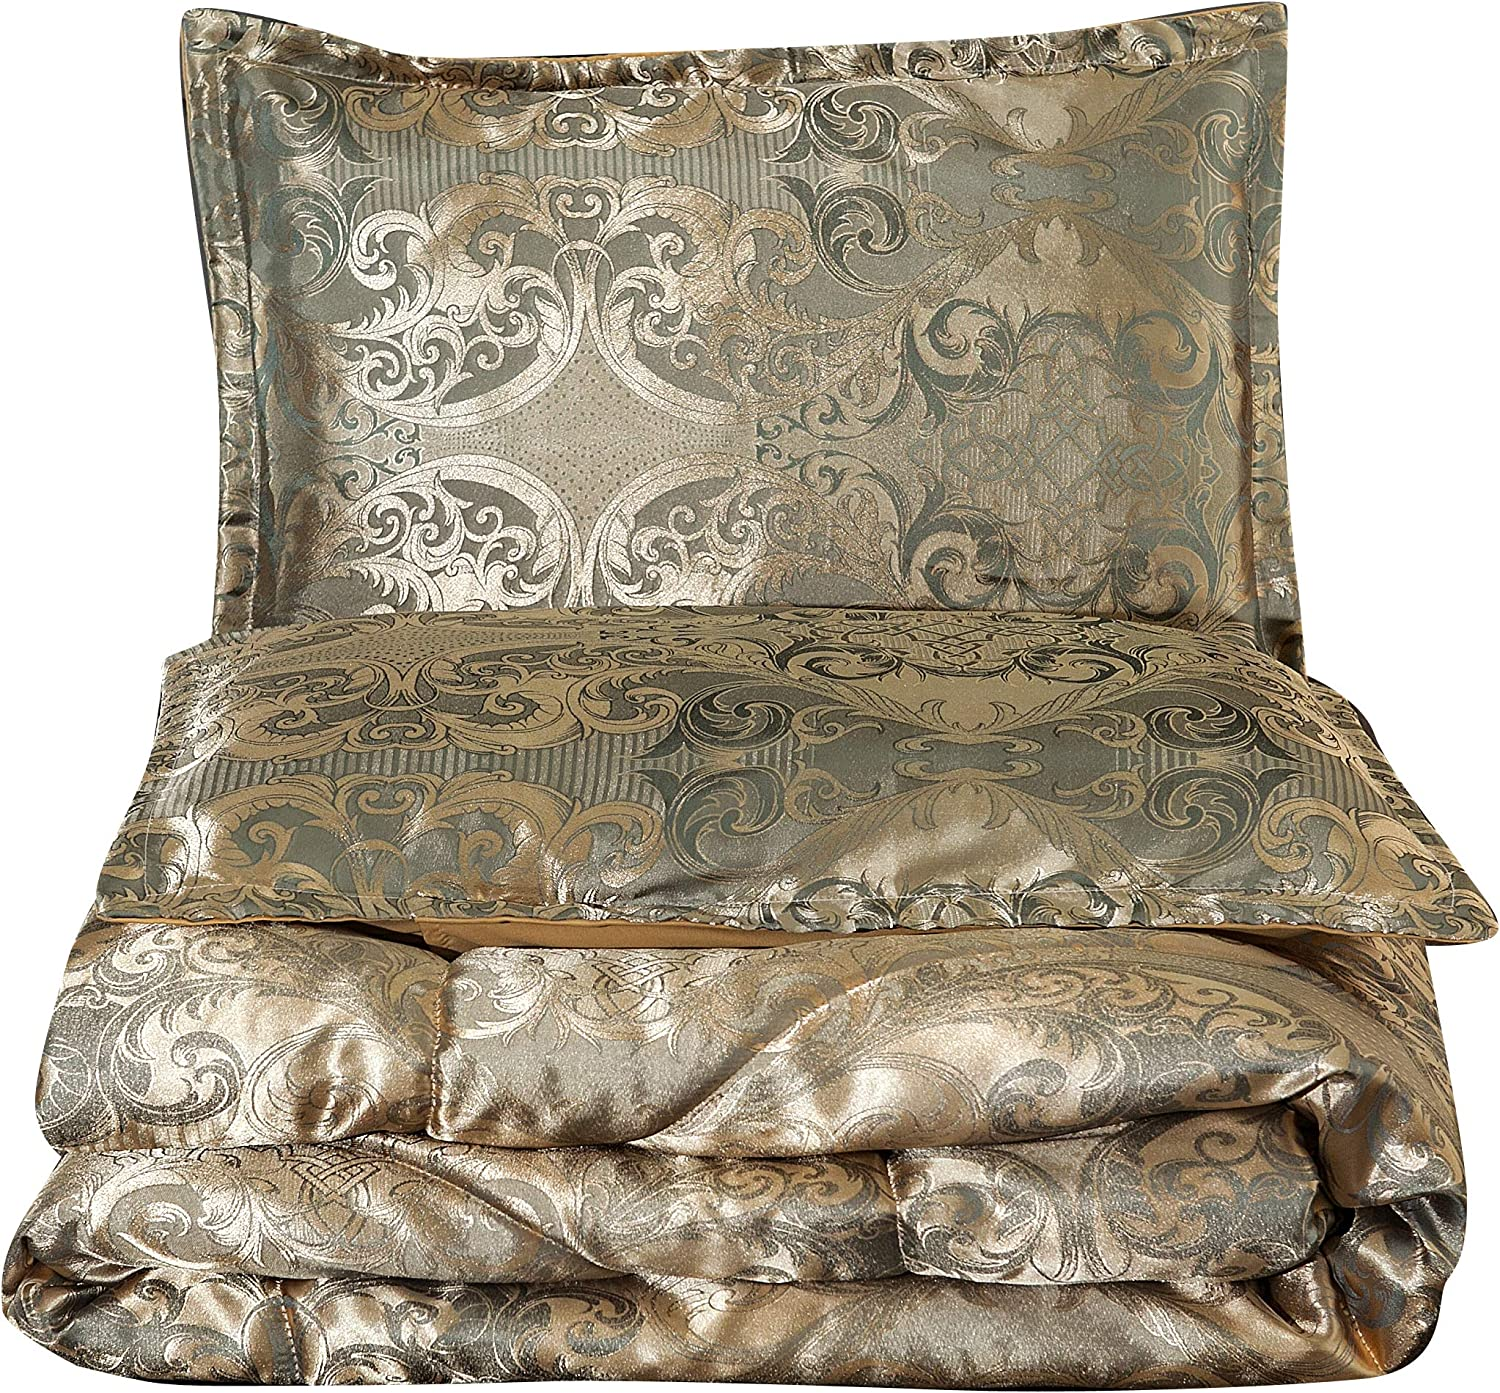 NTBED Luxury Comforter Sets Queen Jacquard Paisley Brushed Heart Quilted Bedding Sets (Gold, Queen)